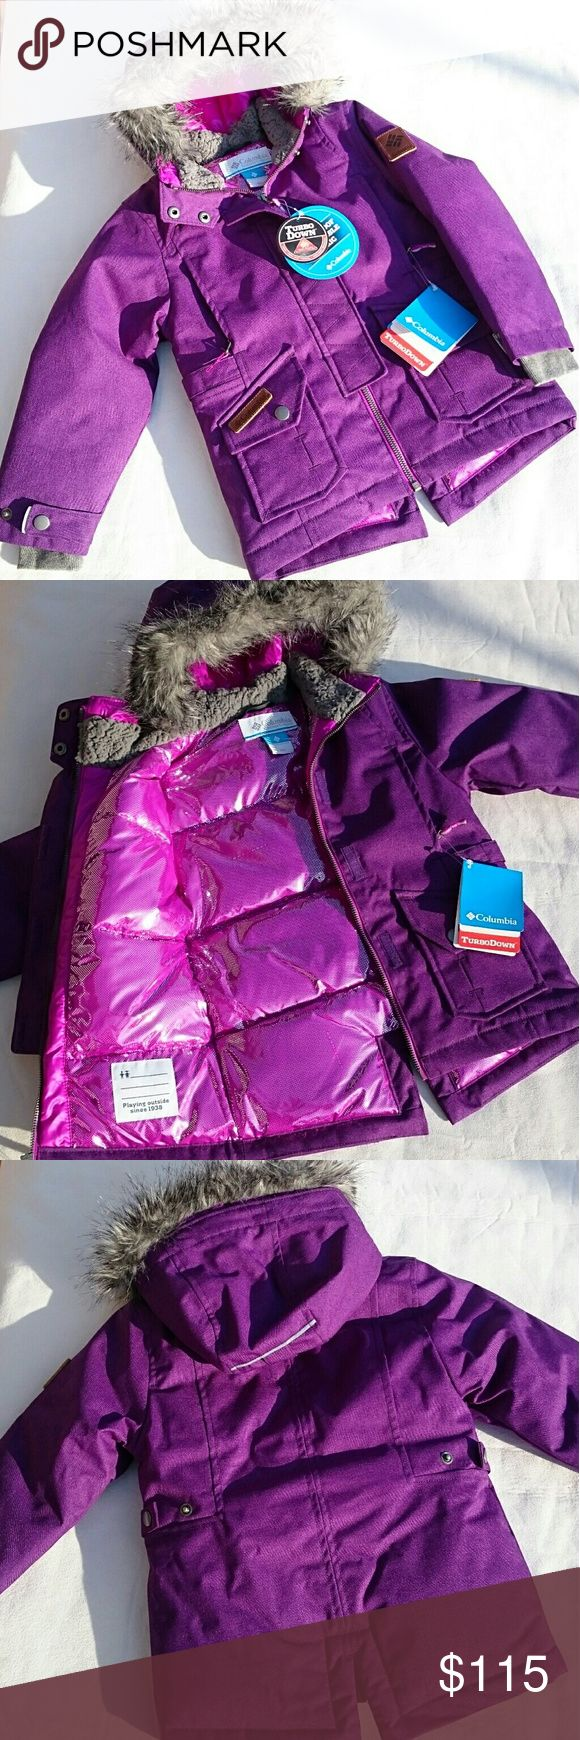 *NEW* Columbia Kid's Purple Turbo Down Ski Jacket BRAND NEW! Kid's Purple Columbia Ski/Snowboard Jacket! NWT! Zip & velcro closure. 2 zippered chest pockets, one for an ipod w hole for headphones. 2 dual waist pockets...open at top & at side...snap closure. Adjusts at waist & sleeves. Beautiful lining! Waterproof! Warm! Machine washable! Girl's size XXS which the sizing chart says is a 4/5.  *REASONABLE* offers considered...10% bundle discount! Columbia Jackets & Coats